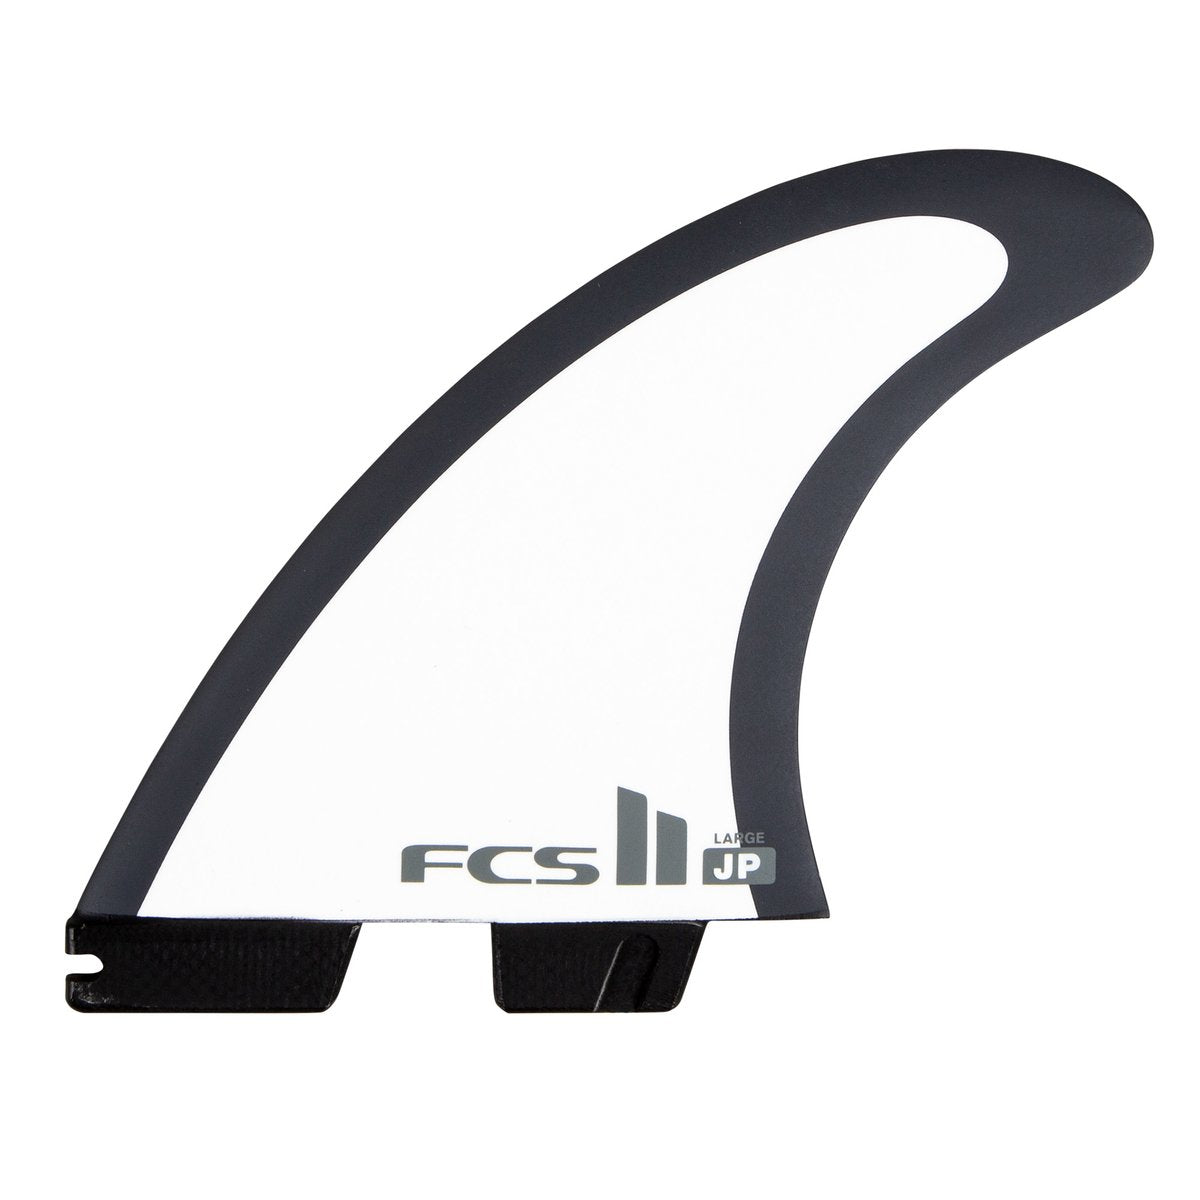 FCS II - PYZEL TRI FINS - FJPM-PC01-MD-TS-R - Size MEDIUM